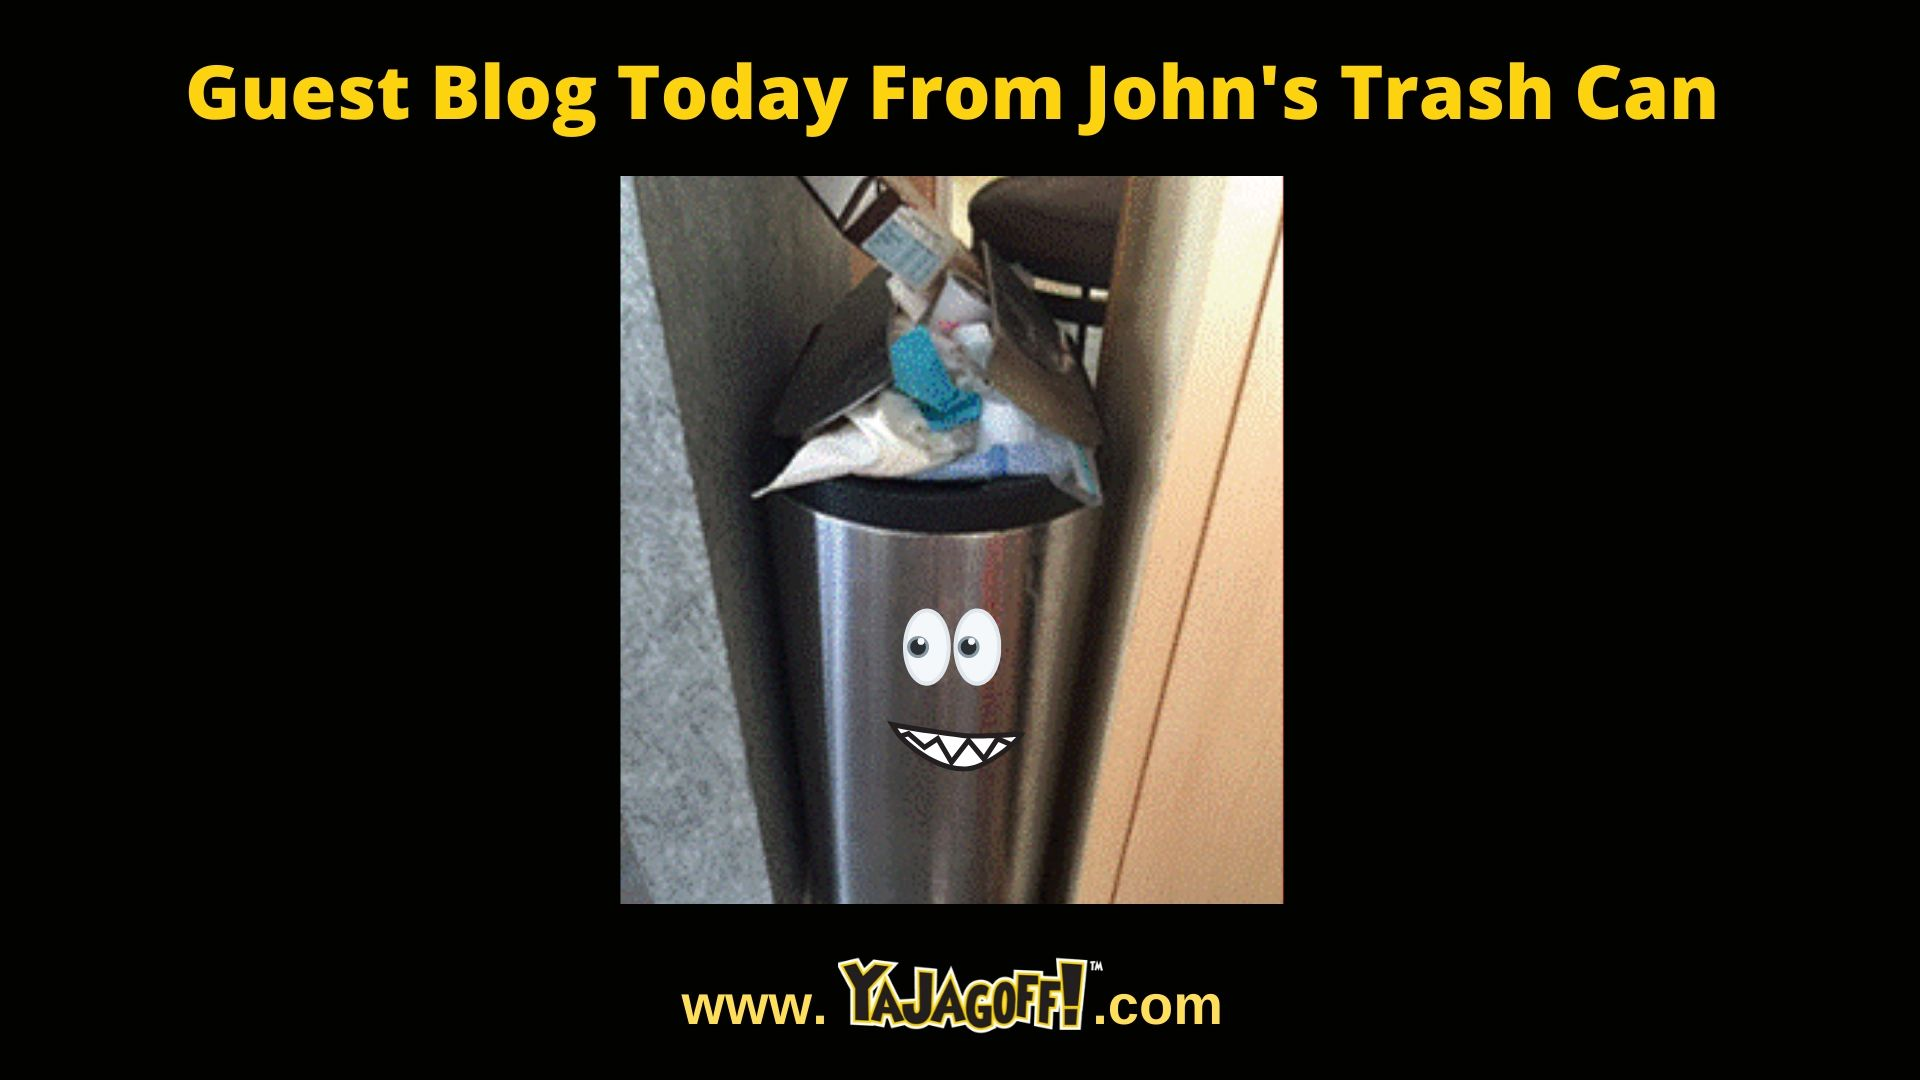 YaJagoff Podcast Garbage Can Photo